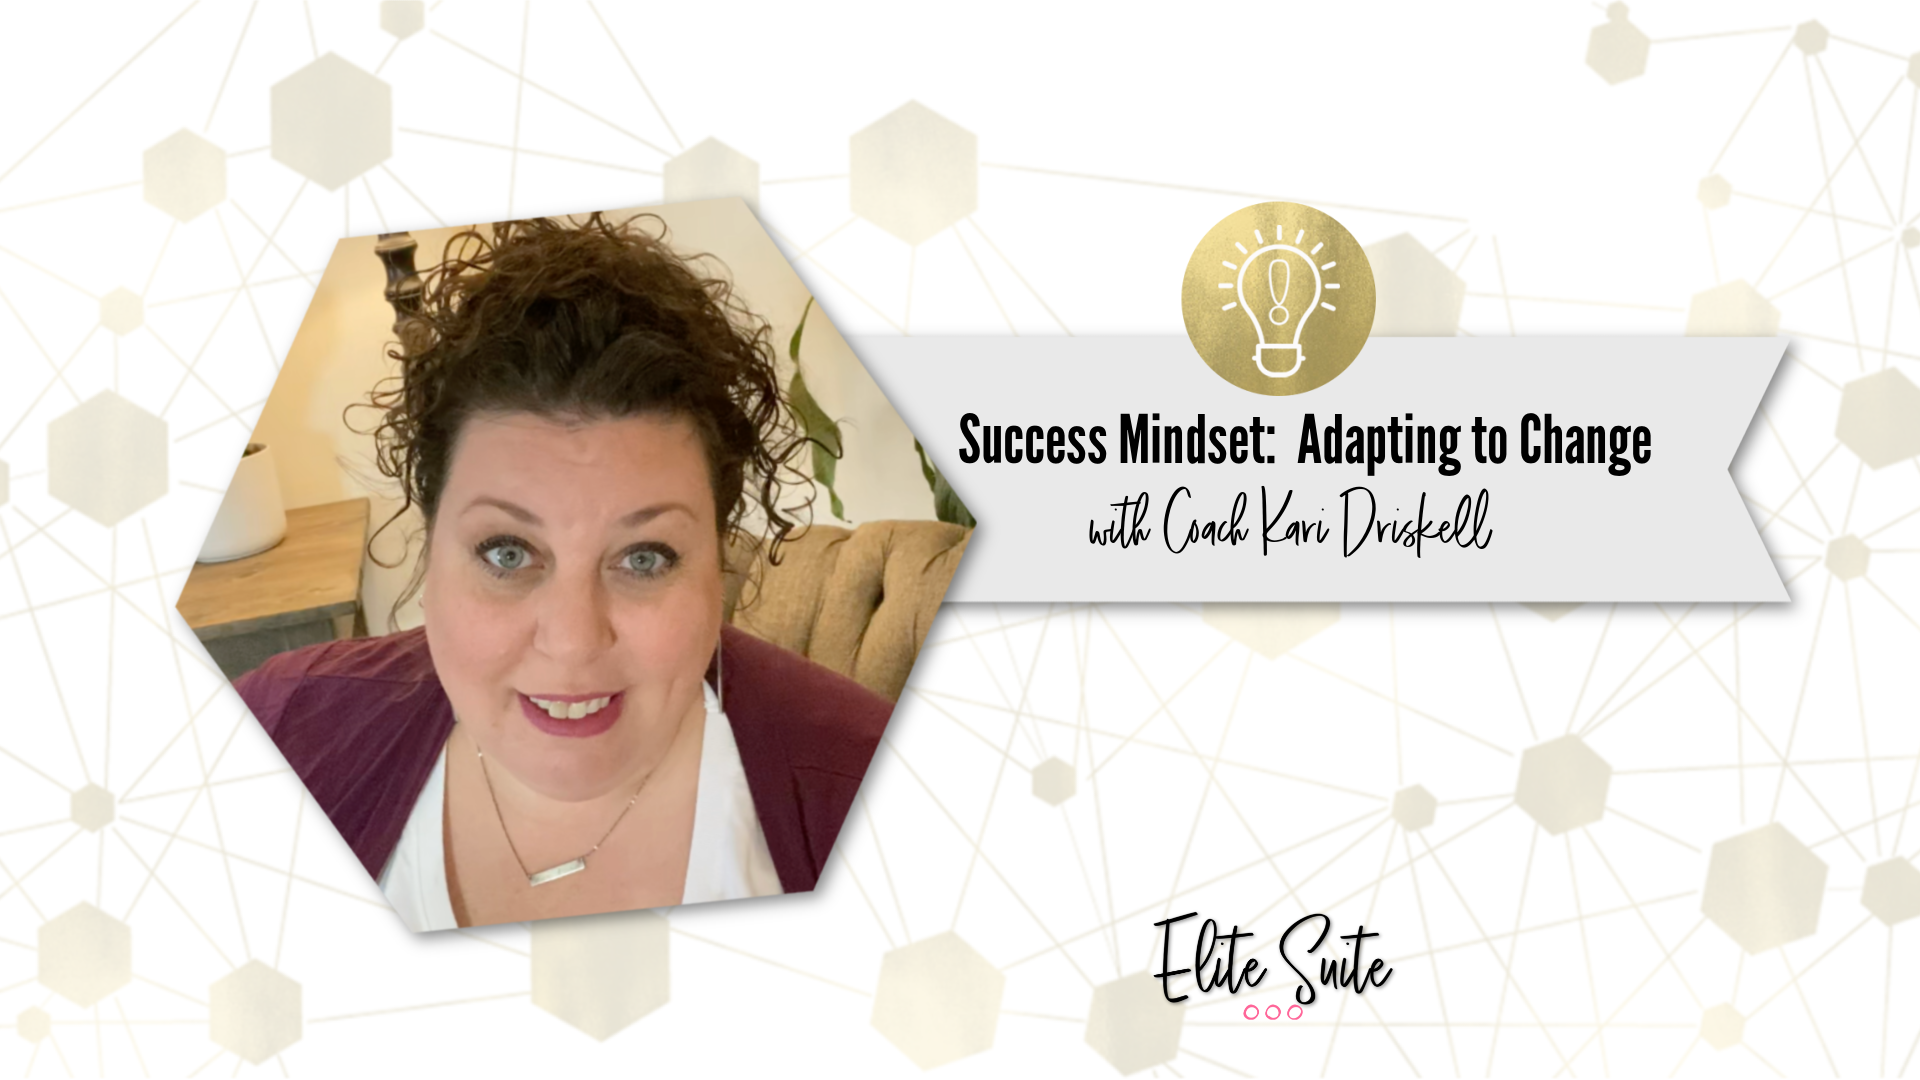 Success Mindset: Adapting to Change - Masterclass title overlay